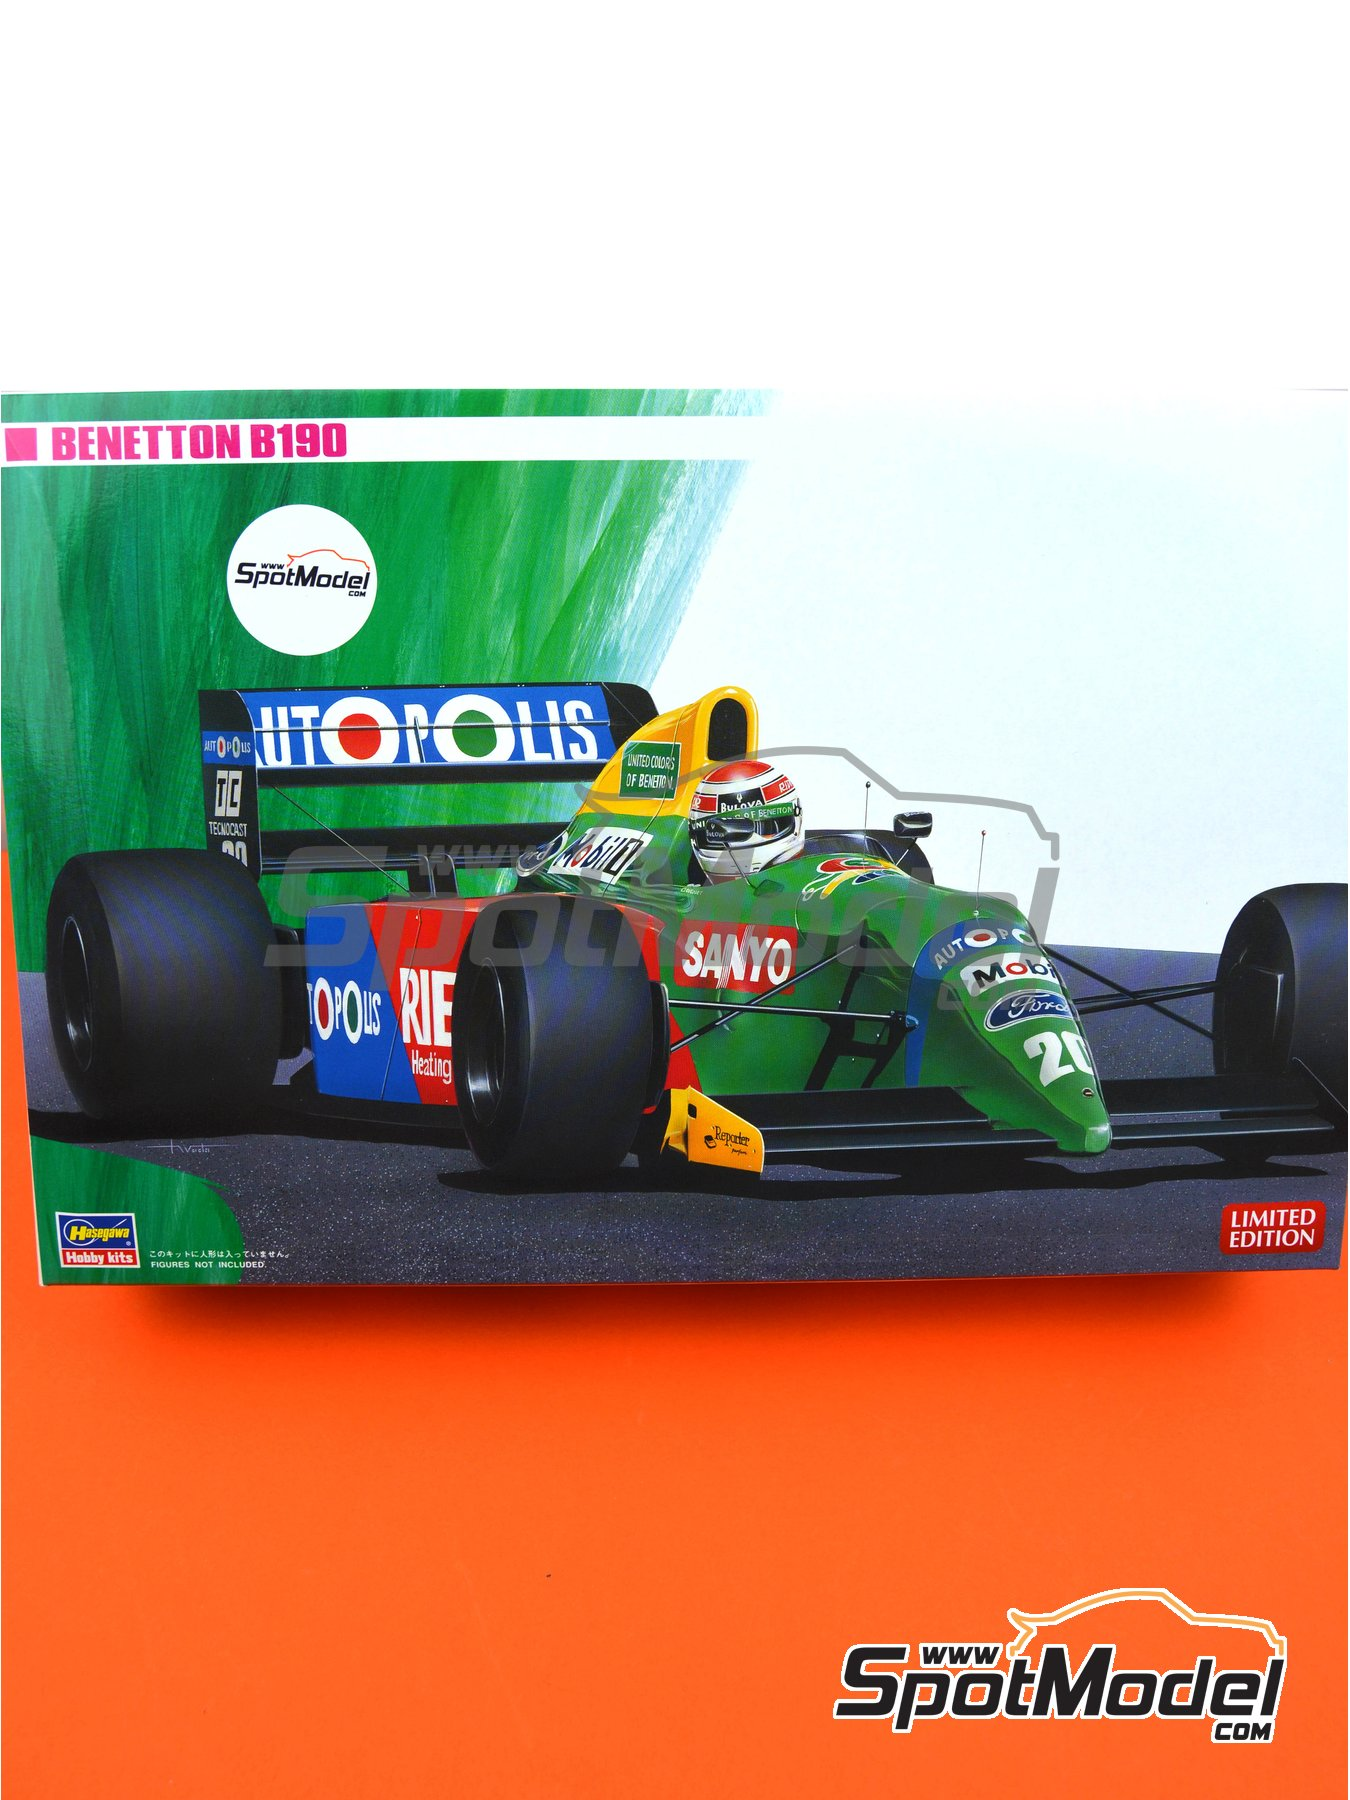 Benetton Ford B190 Autopolis - Japanese Formula 1 Grand Prix, Monaco Formula 1 Grand Prix 1990 | Model car kit in 1/24 scale manufactured by Hasegawa (ref. 20340, also FS5, FS-5, 23010, CF10, CF-10, 51550, SP50, 23013, CF13 and CF-13) image